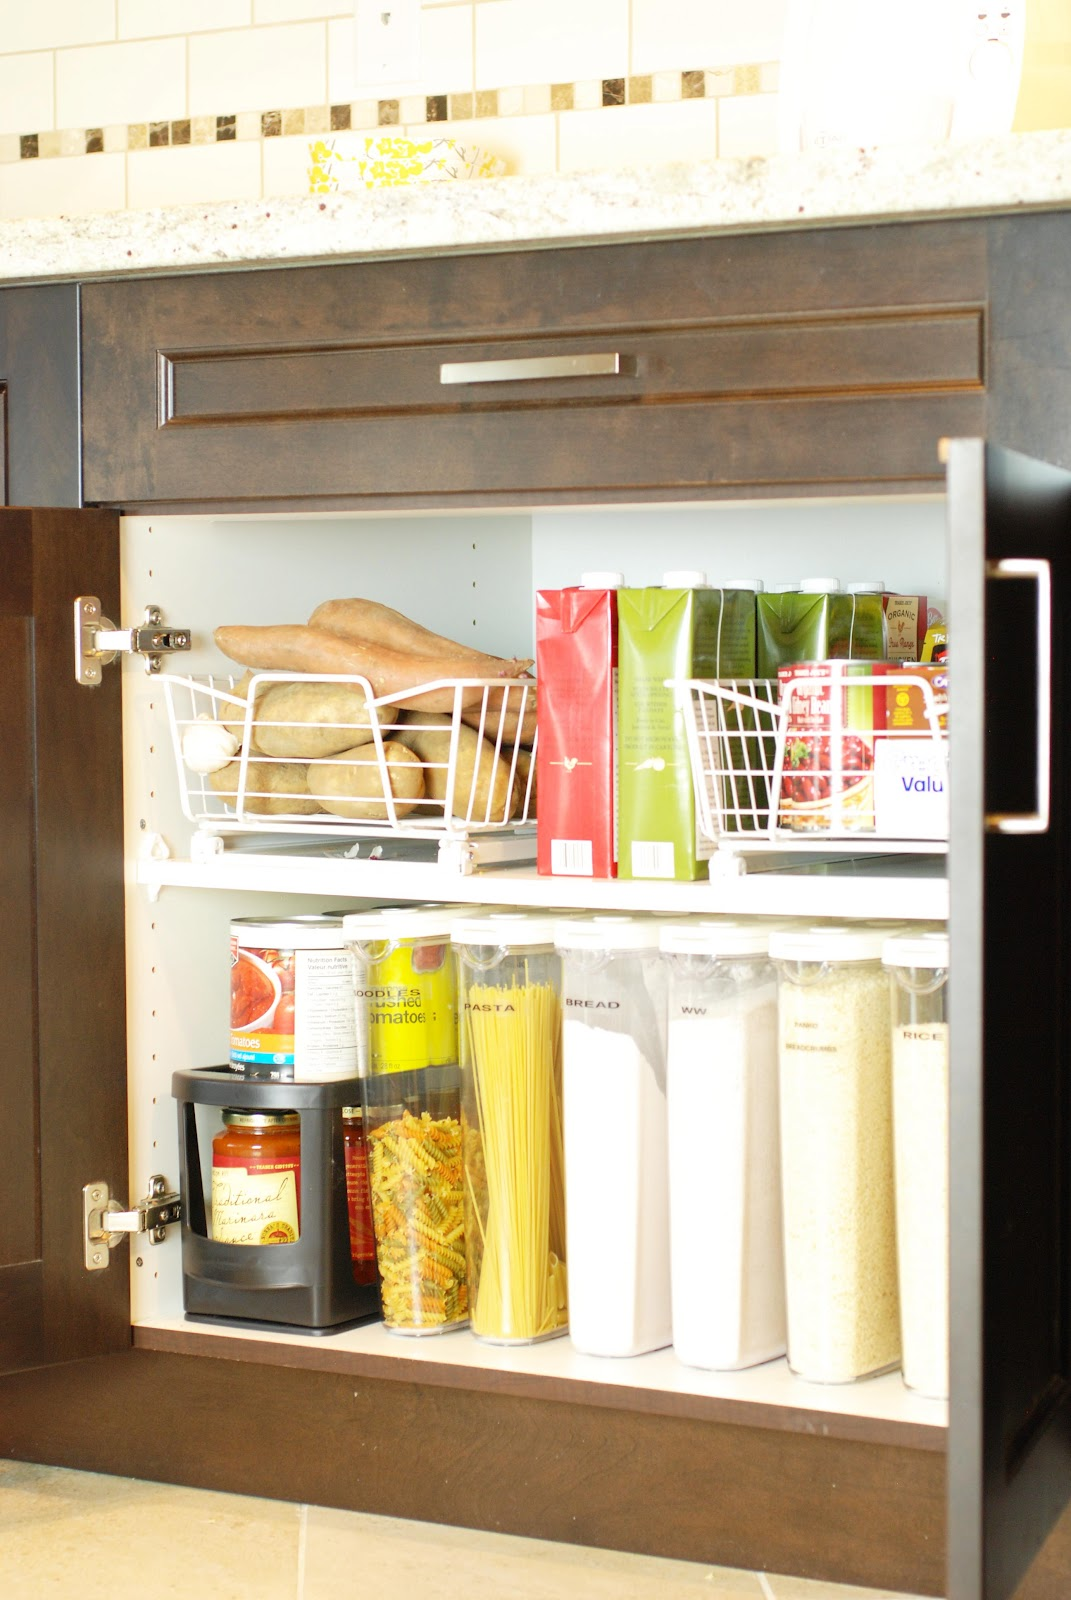 Kitchen Shelf Organization Kitchen Storage Organization Kitchen Ideas